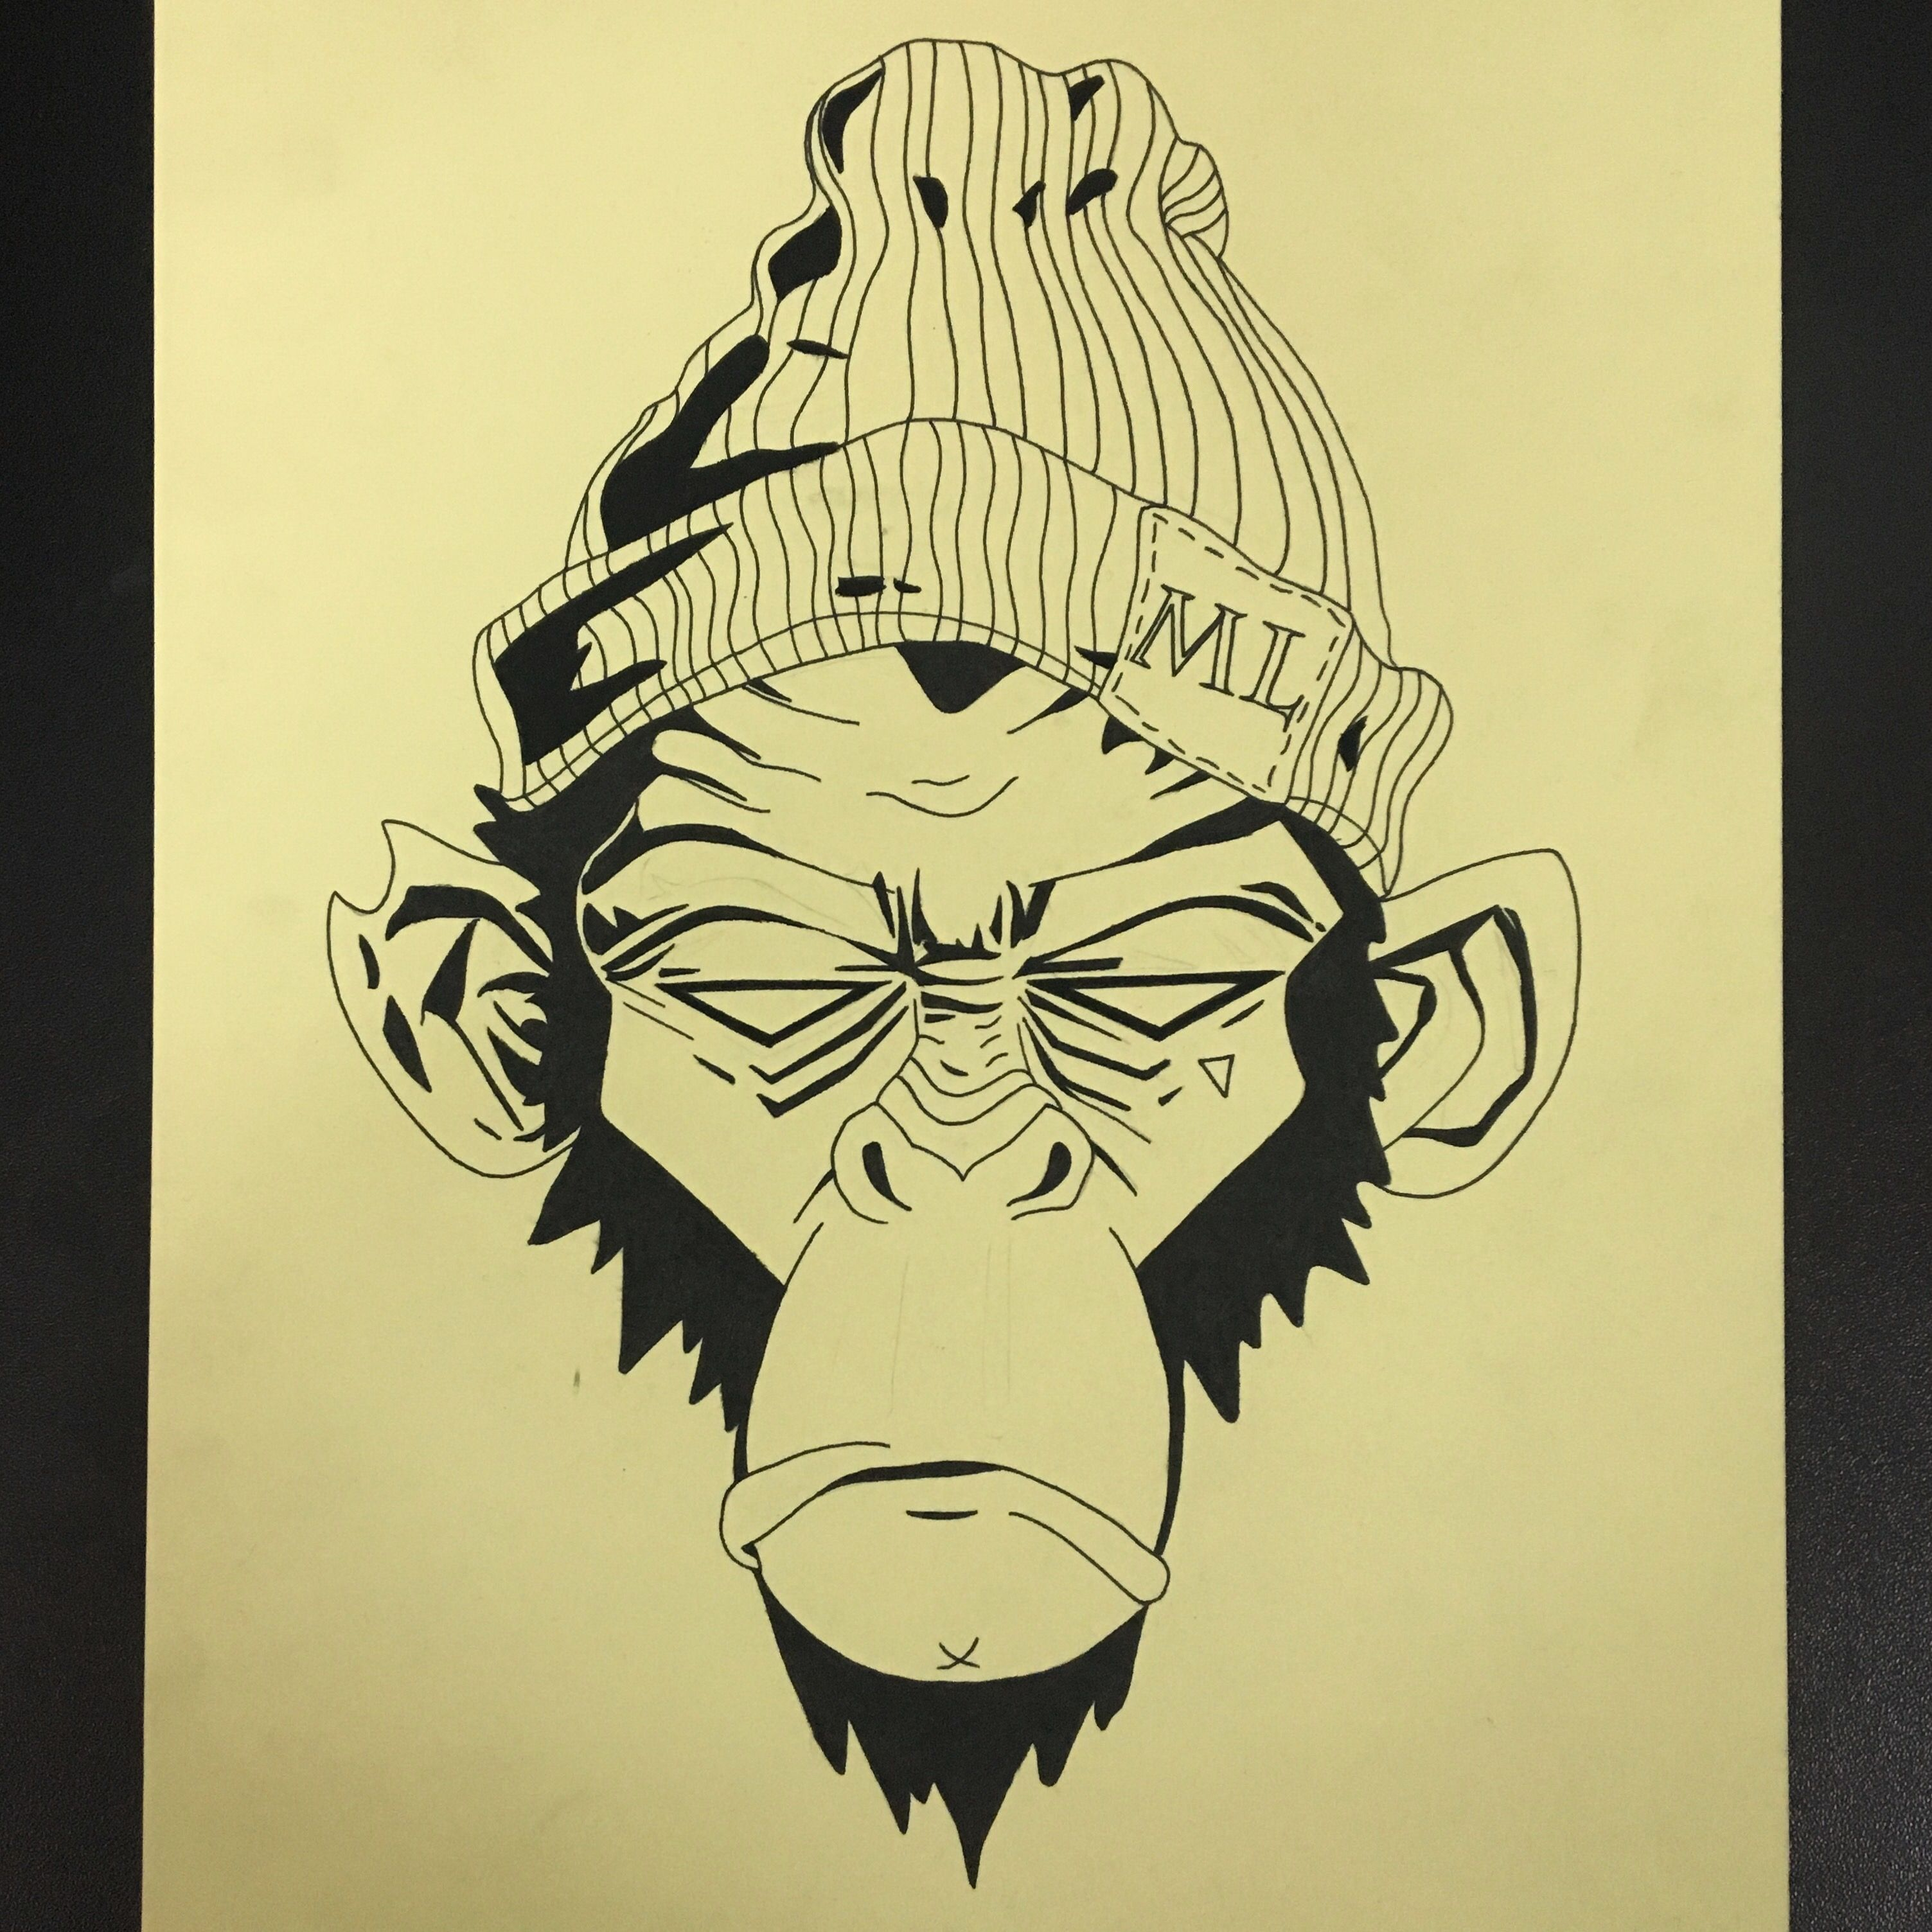 Monkey sketch sketchbook tuesday drawing draw chimpanzee tattoo tattoos jungle cap animal animals cartoon holdfastpainting